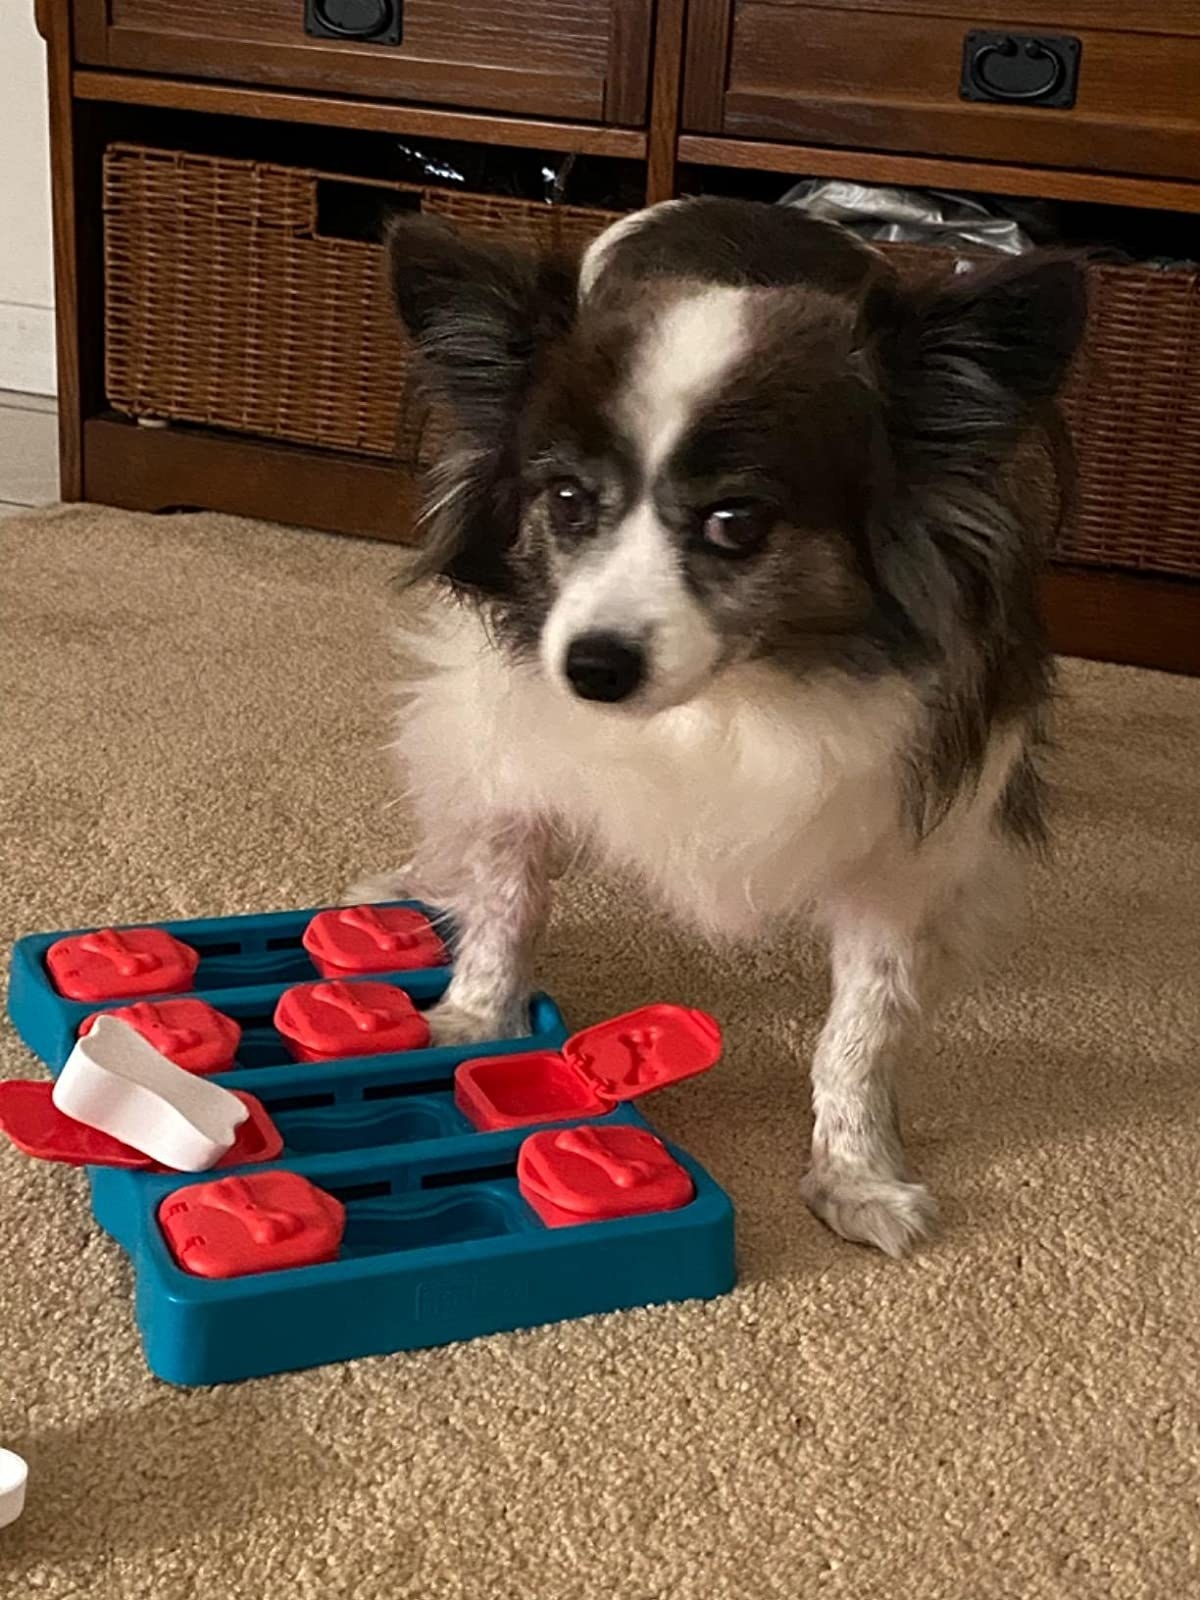 A dog who has solved the puzzle